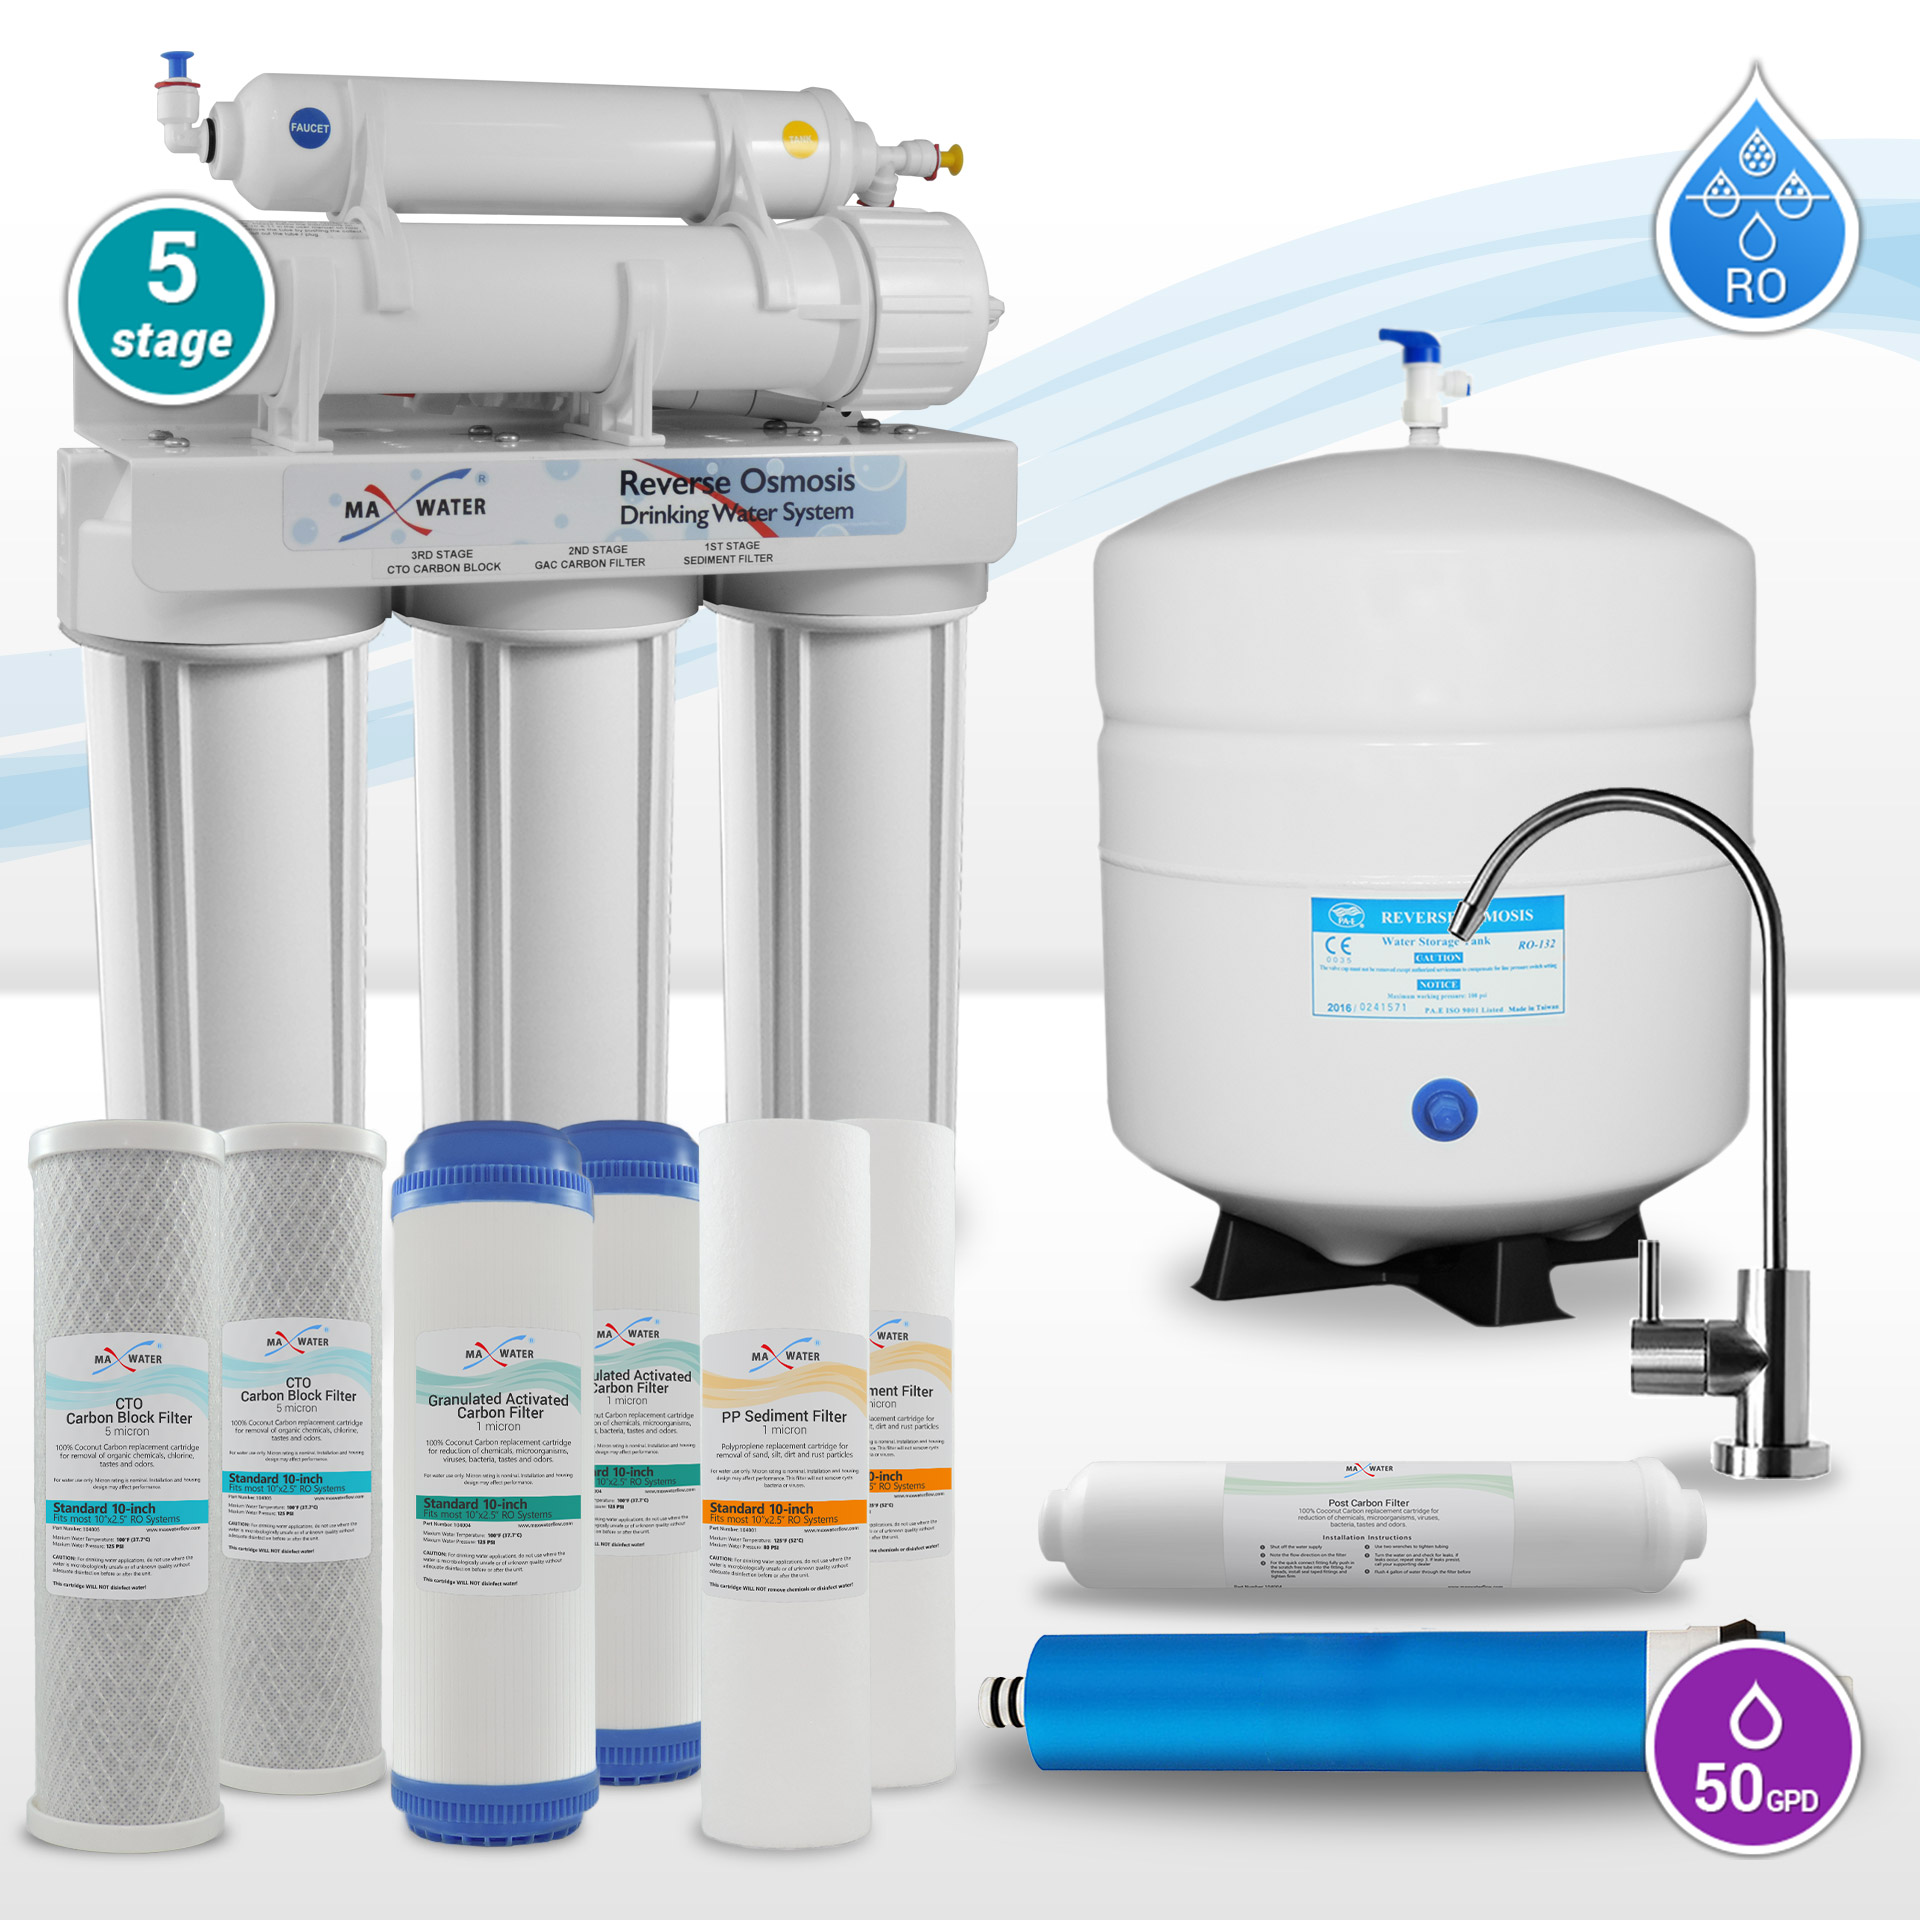 96f0caab1a3 5 Stage Home Drinking Reverse Osmosis System PLUS Extra Full Set- 4 ...